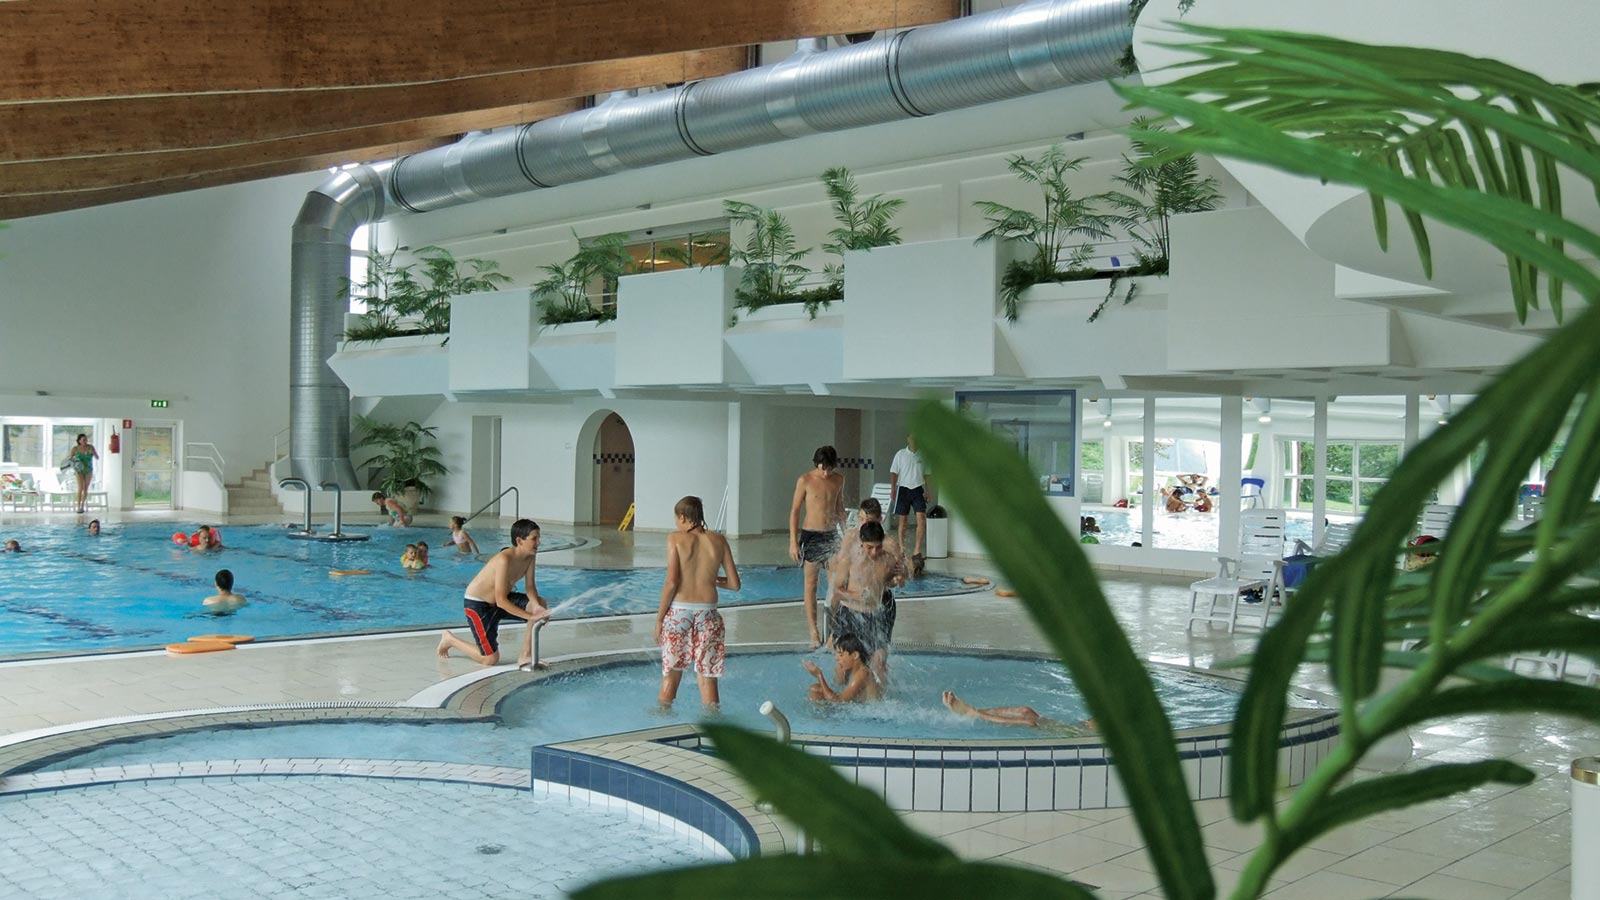 View of the inside of the indoor pool Alpinpool in Maranza with kids playing in the water